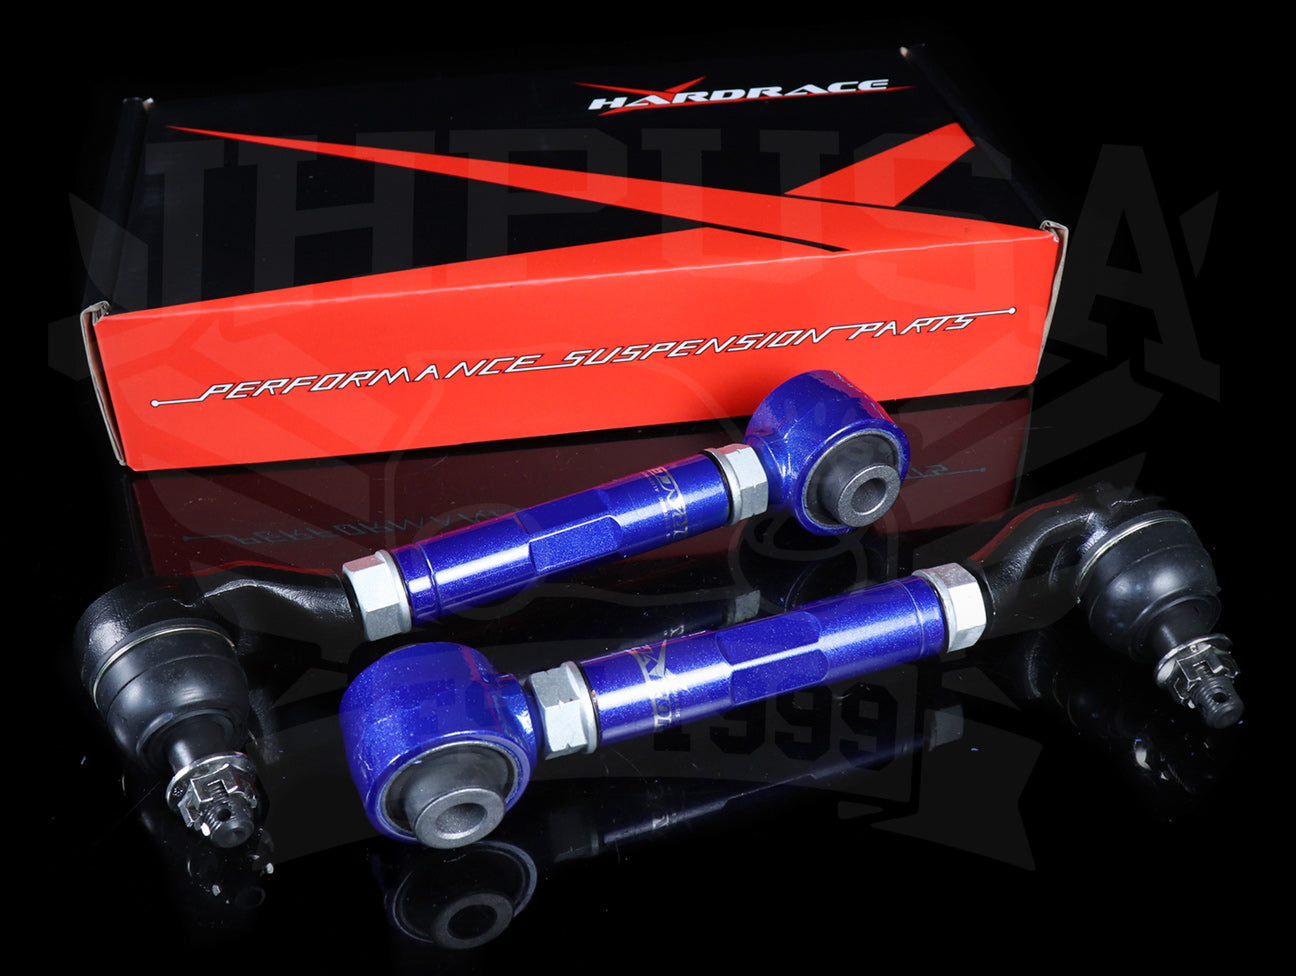 Hardrace Rear Camber Kit - 04-08 TSX / 03-07 Accord